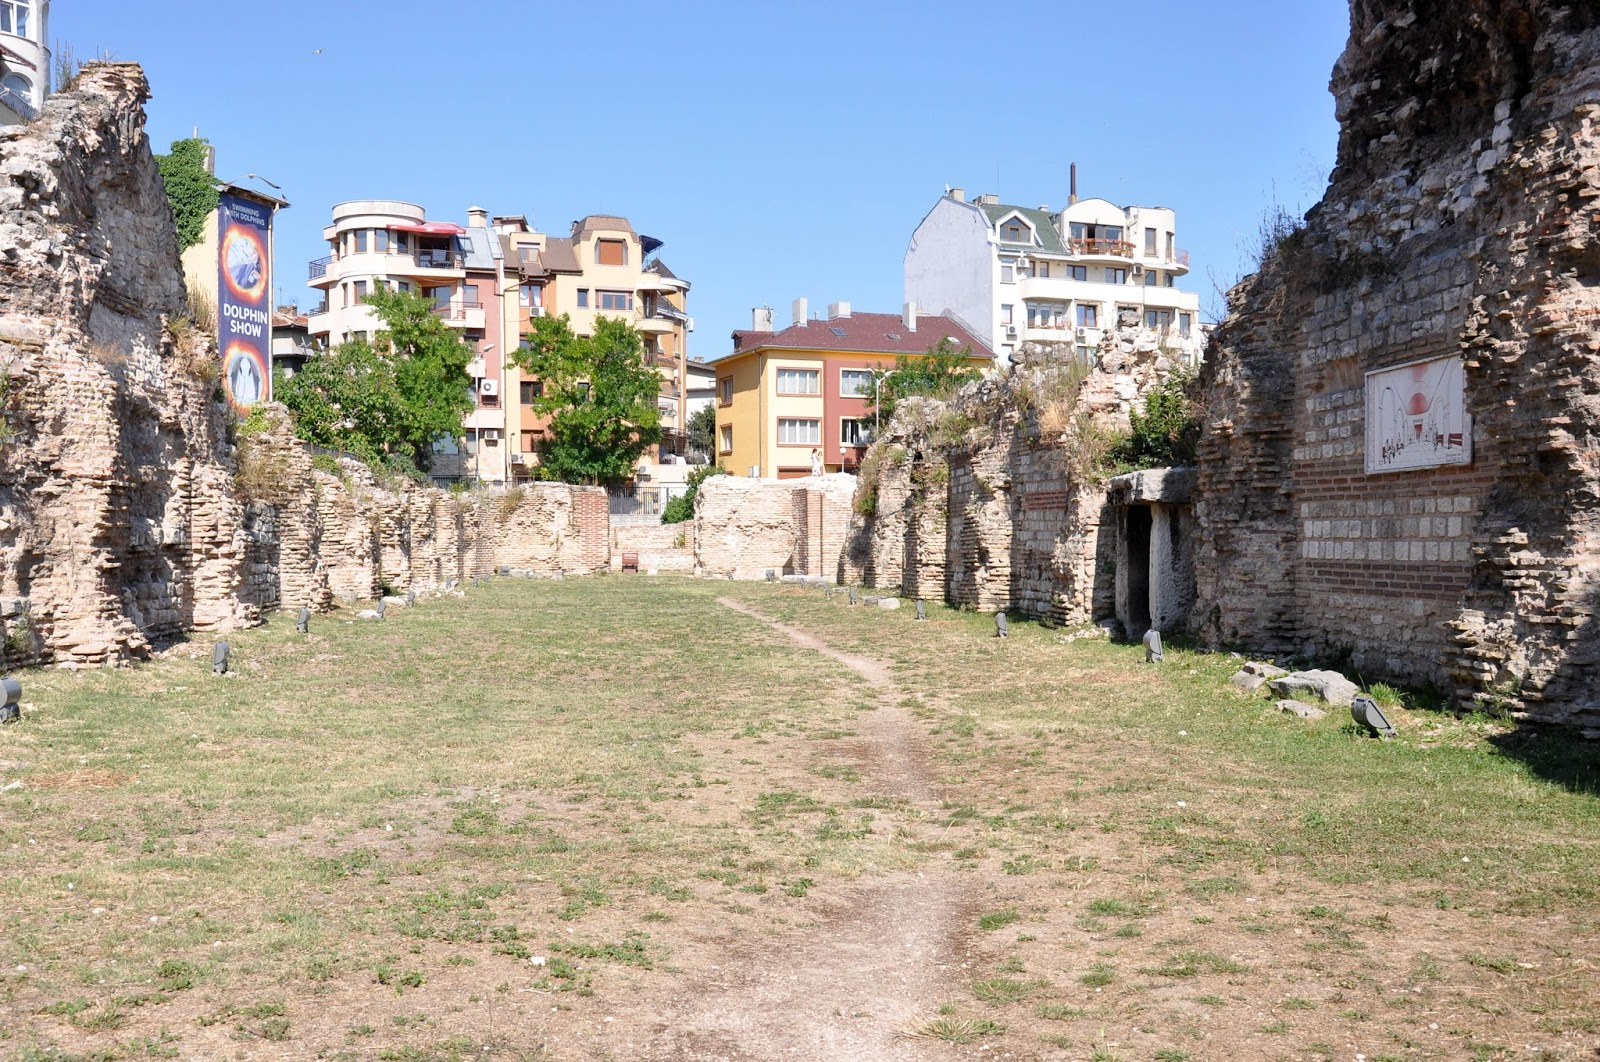 Ancient ruins surrounded by blocks of flats, The Roman Thermae, Varna, Bulgaria